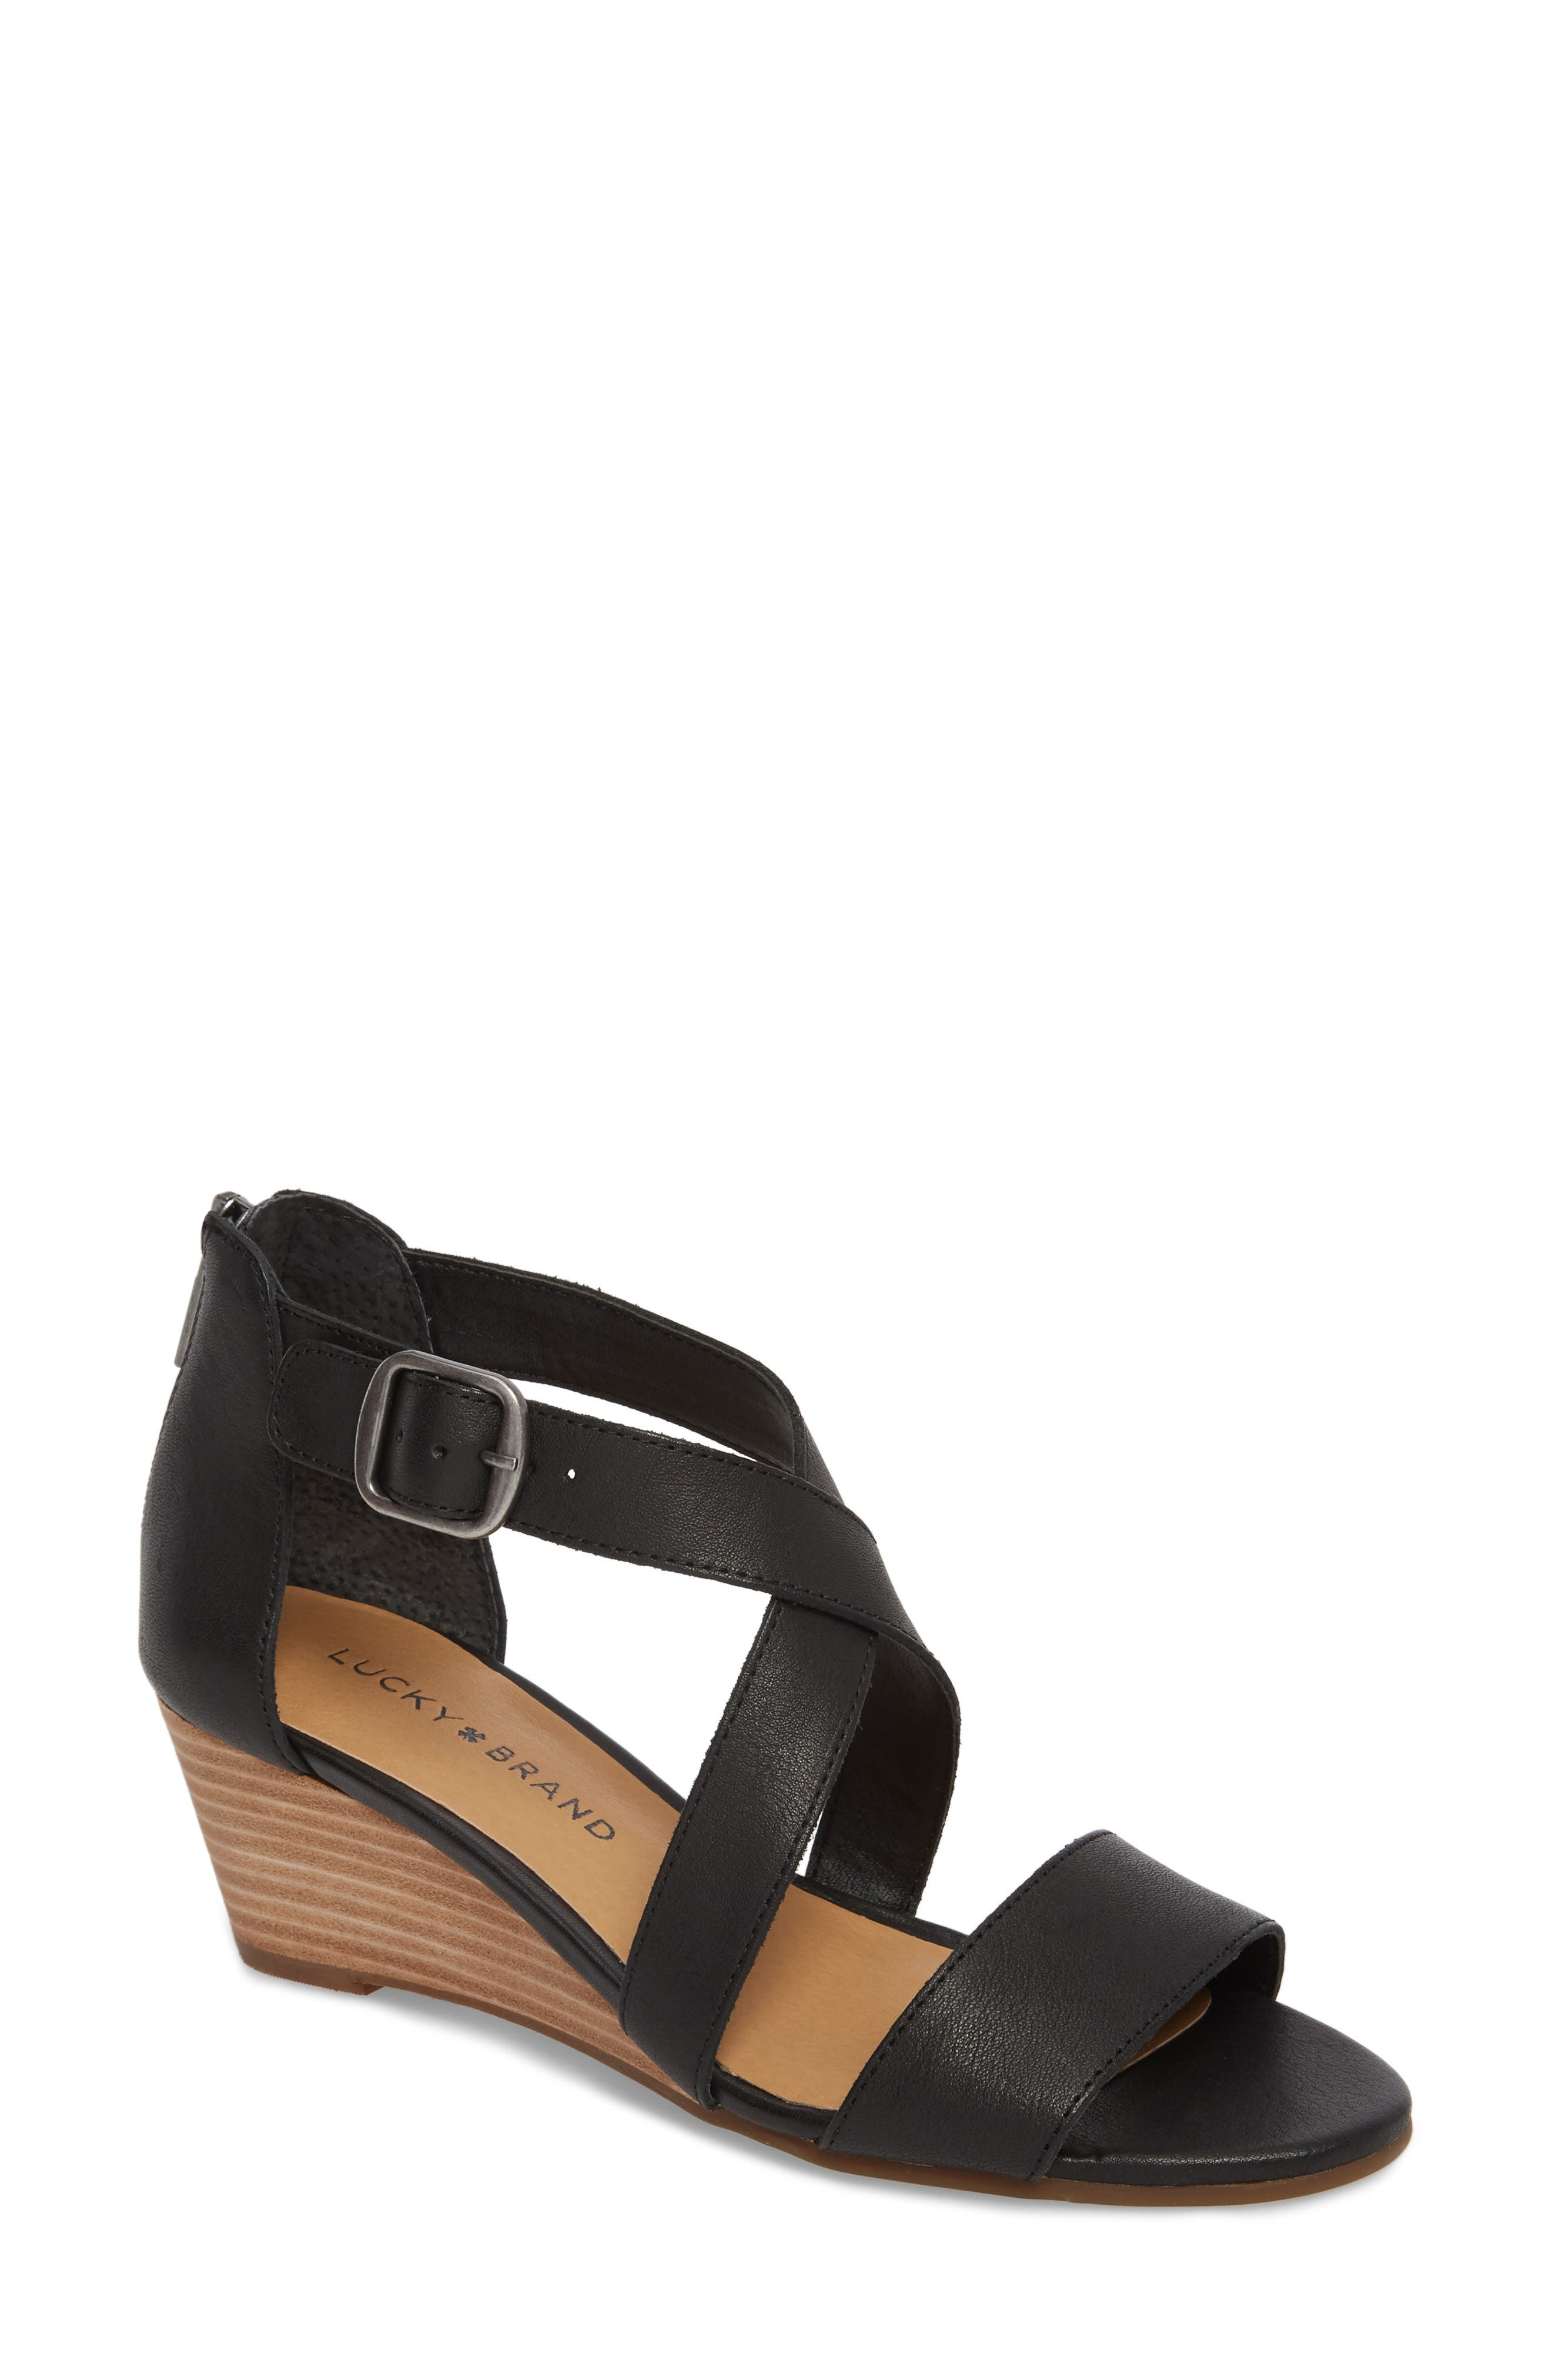 Jestah Wedge Sandal,                         Main,                         color, Black Leather